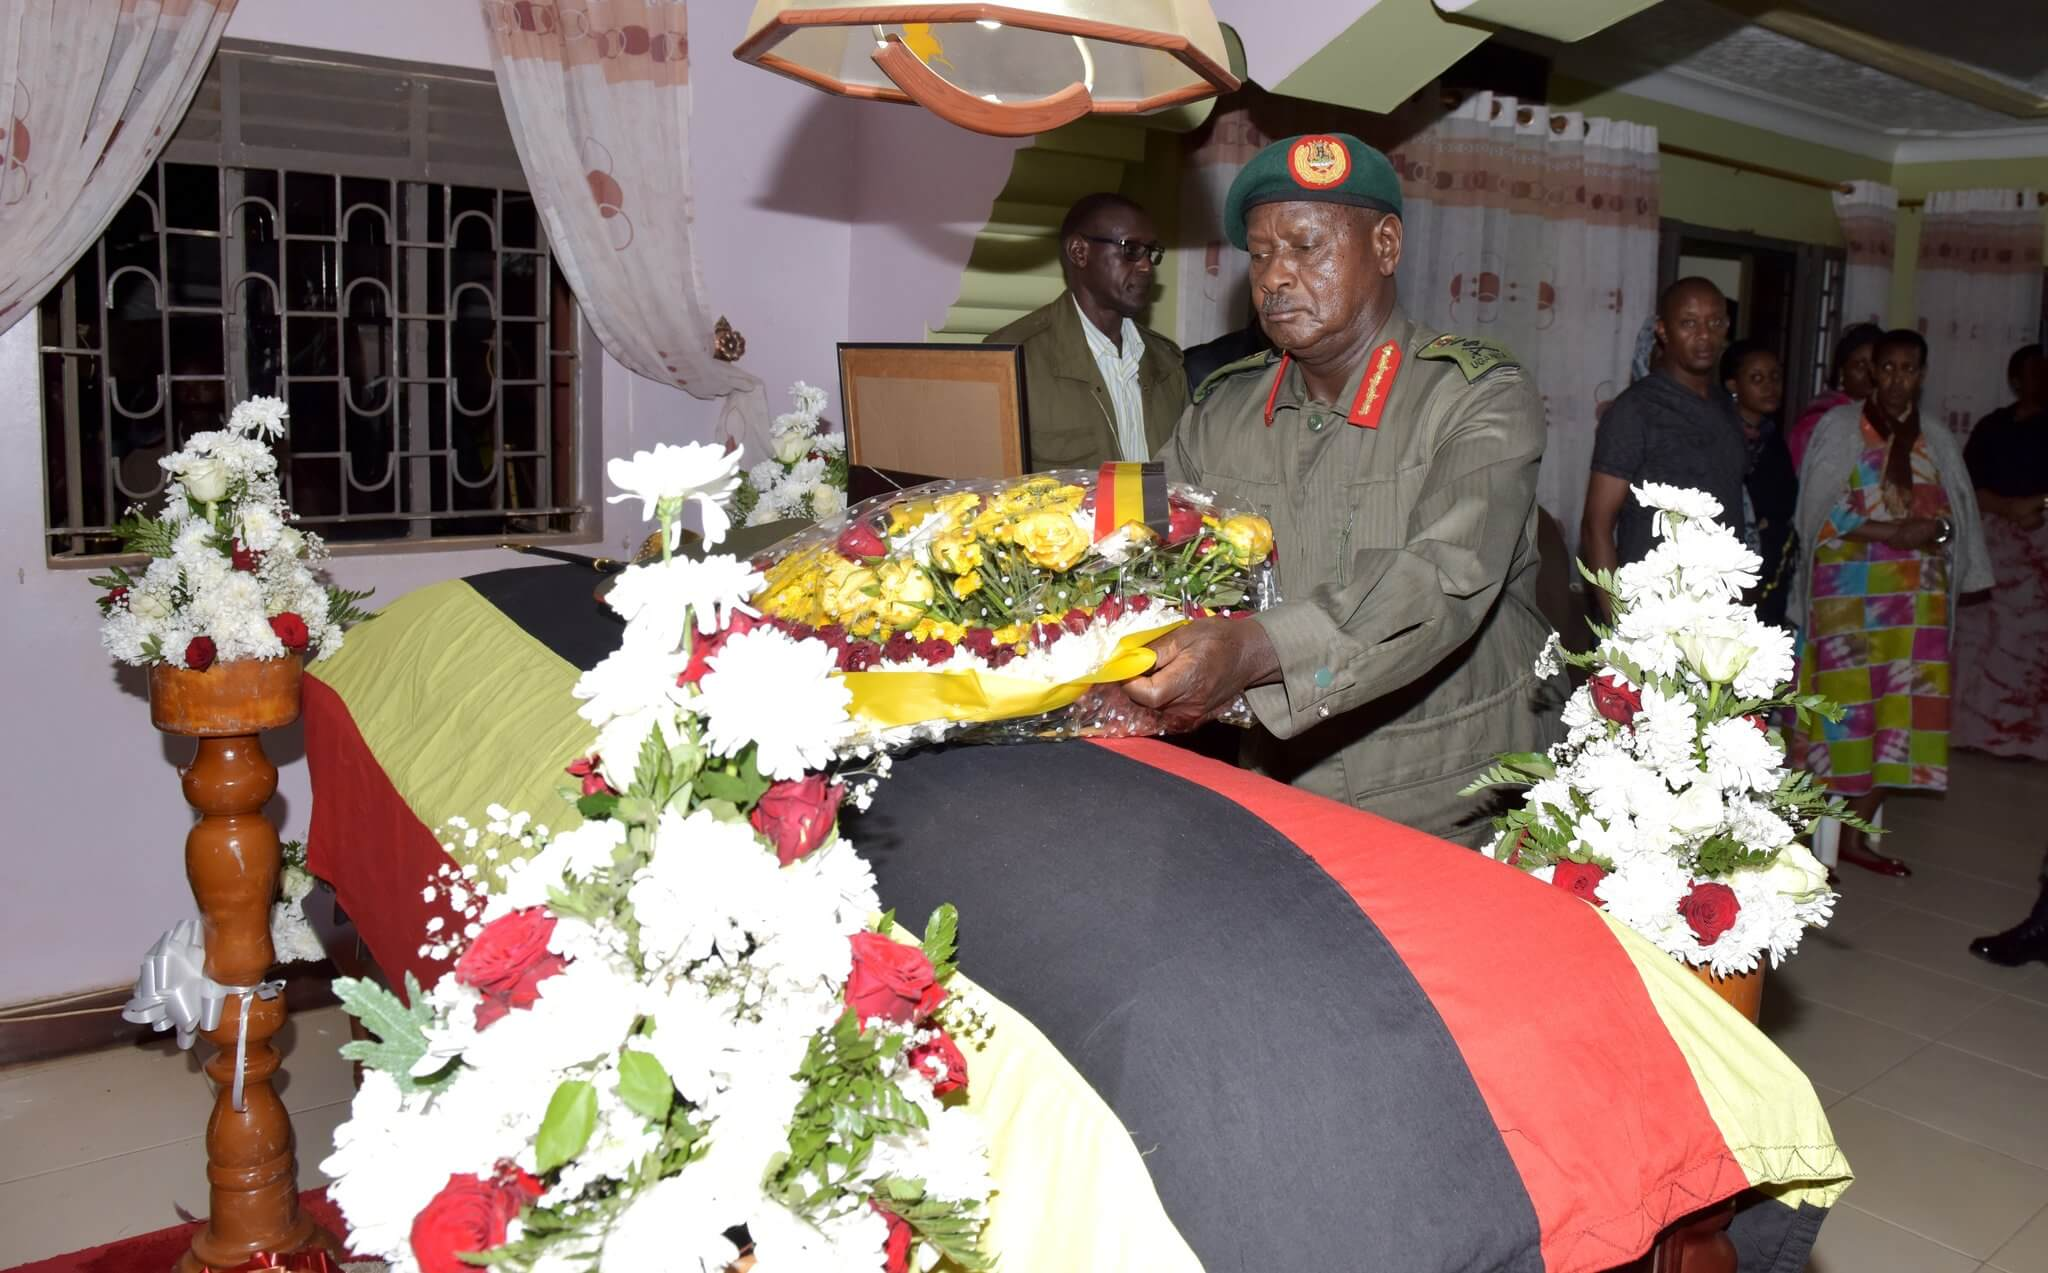 President Yoweri Museveni lays a wreath at the casket containing remains of Brig Geoffrey Taban Kyabihende at his home in Bunga on Wednesday